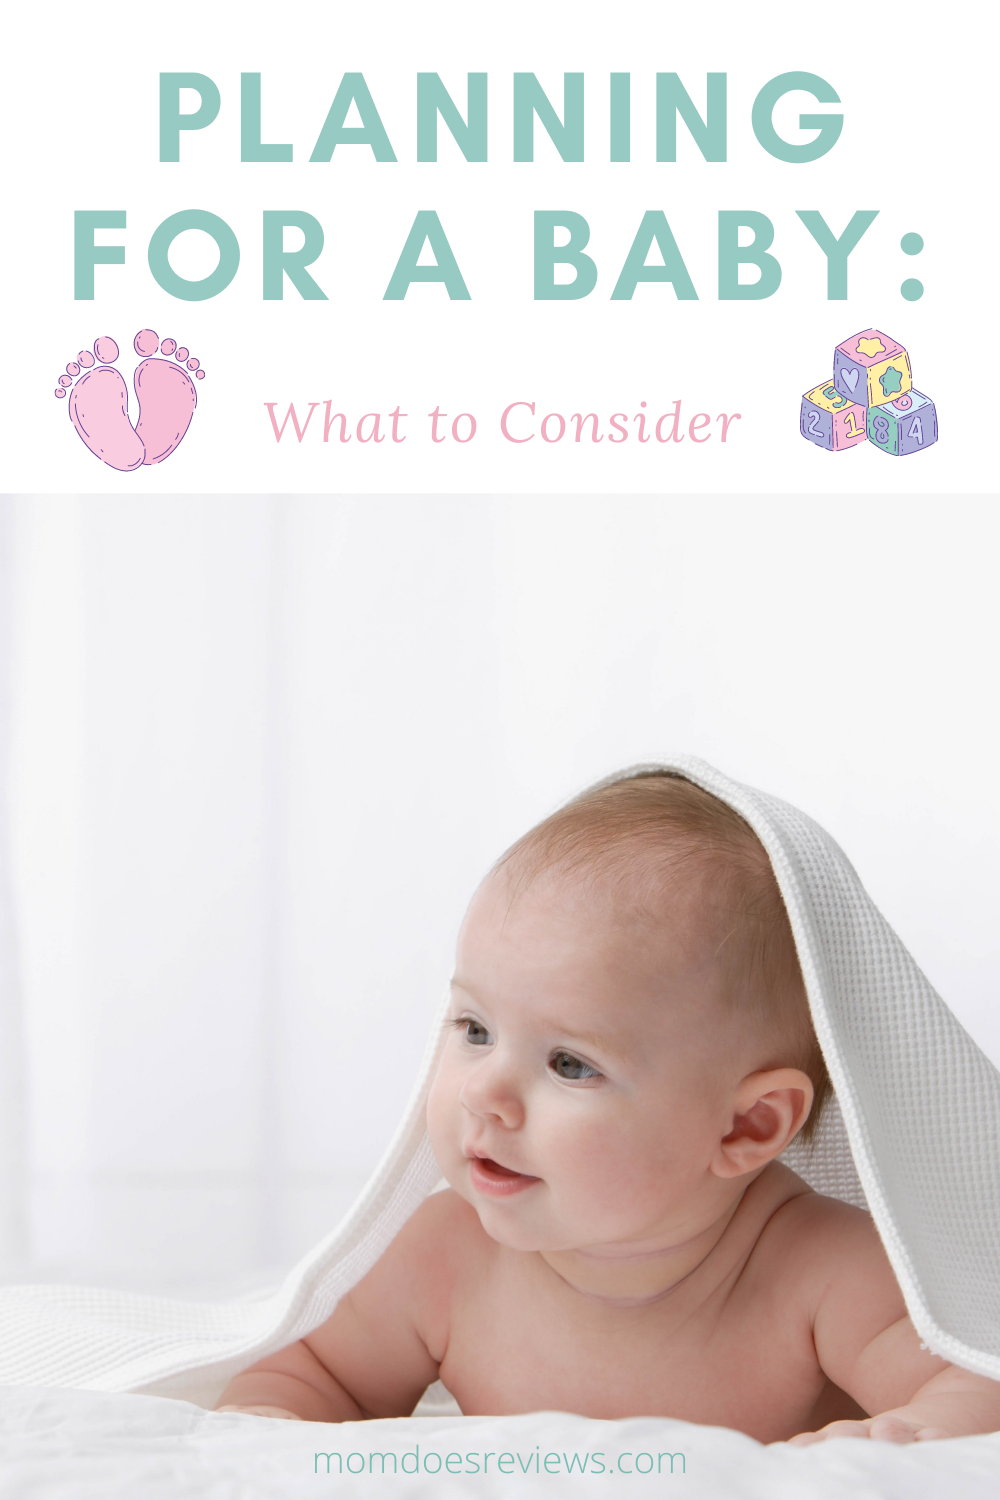 Planning for a Baby: What Do I Need to Consider?